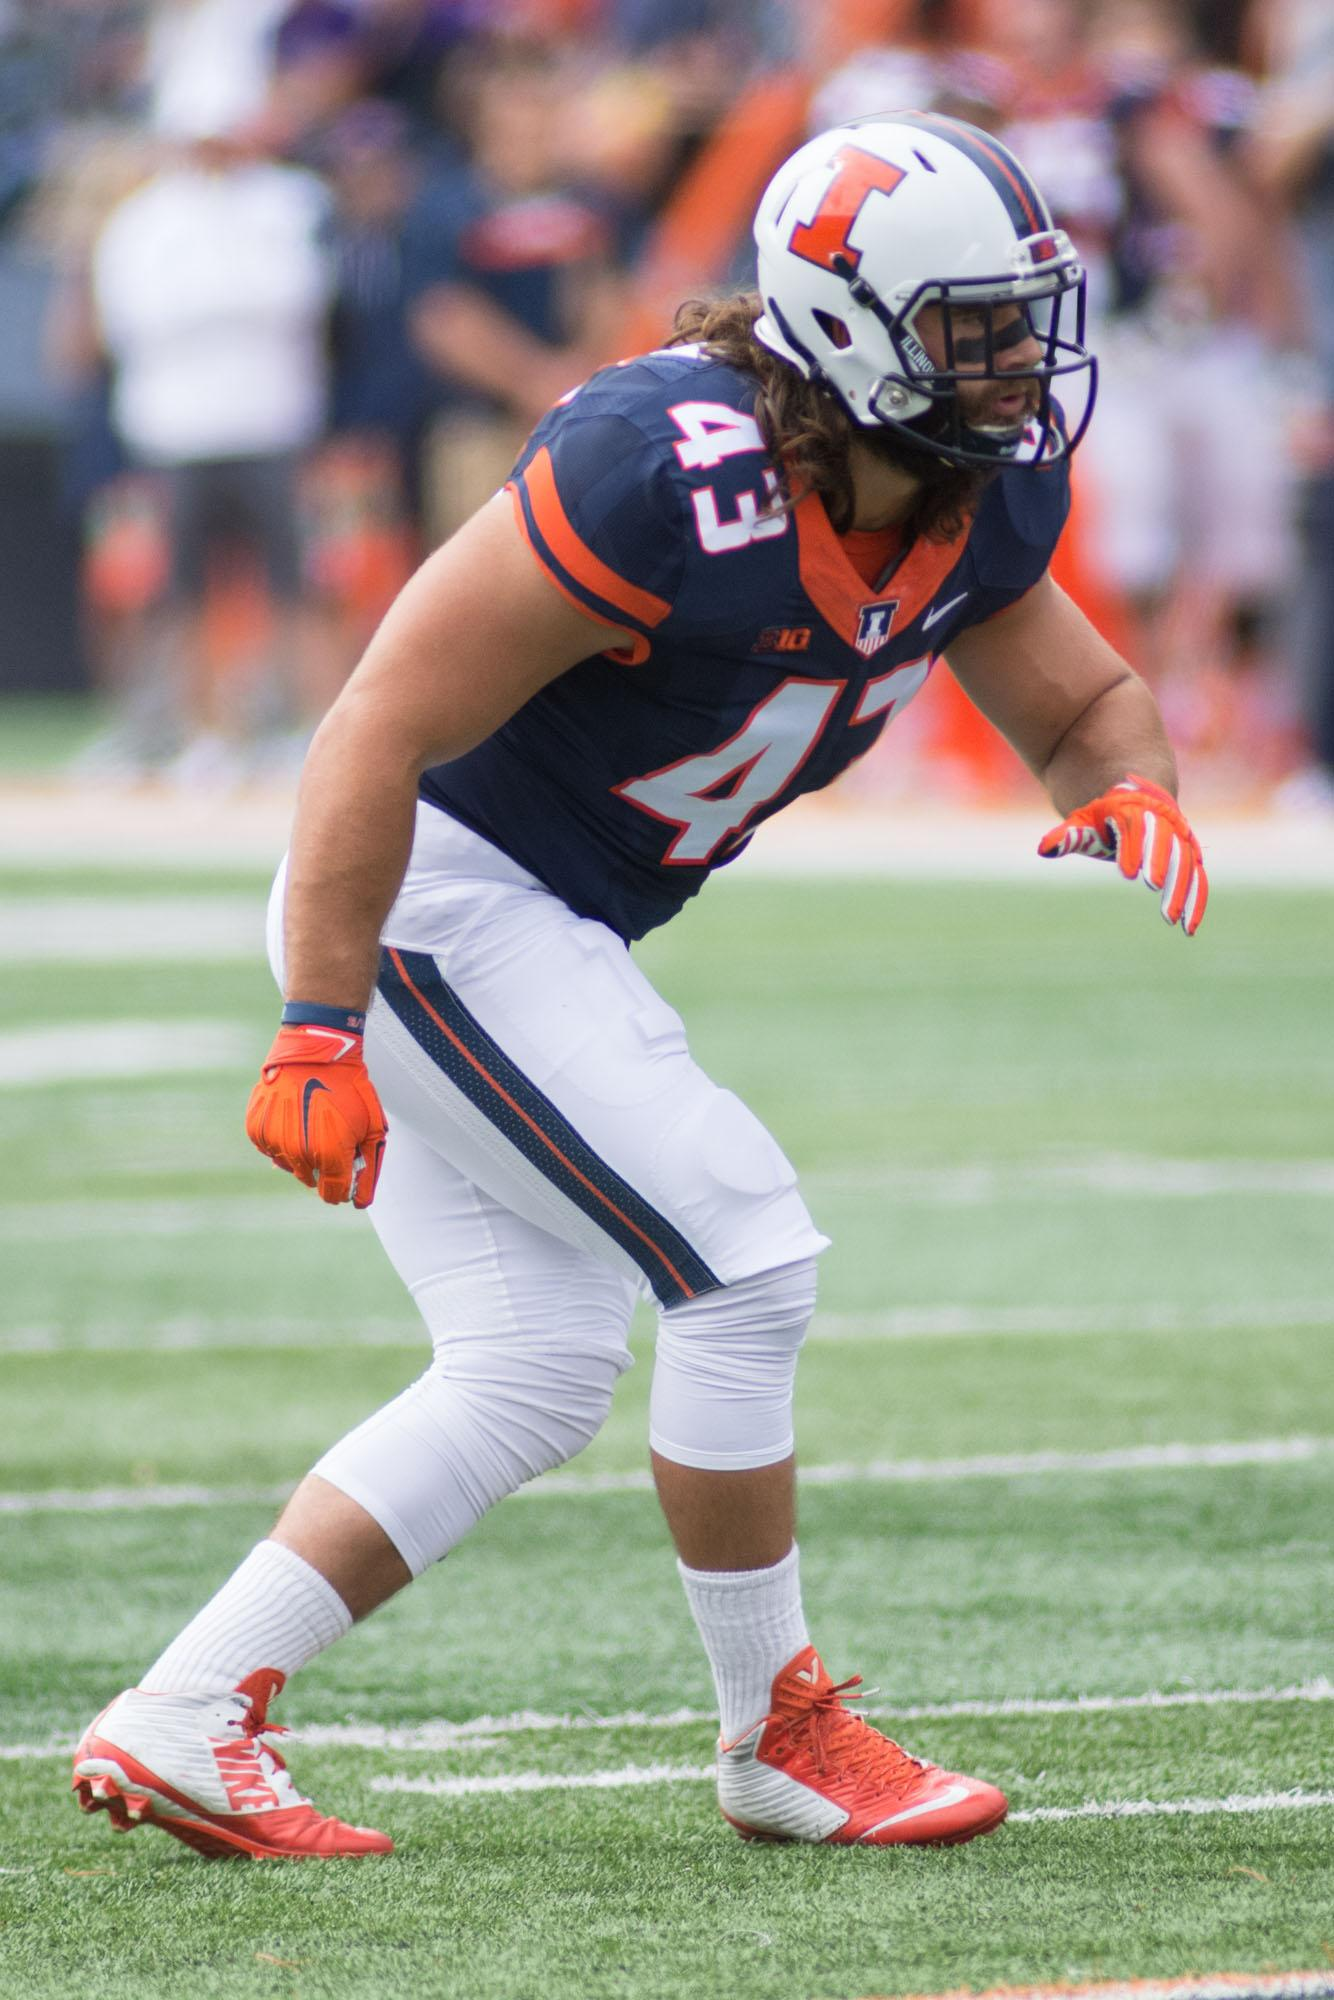 Thoughts+and+reactions+after+the+Illini%27s+44-0+dismantling+of+Western+Illinois